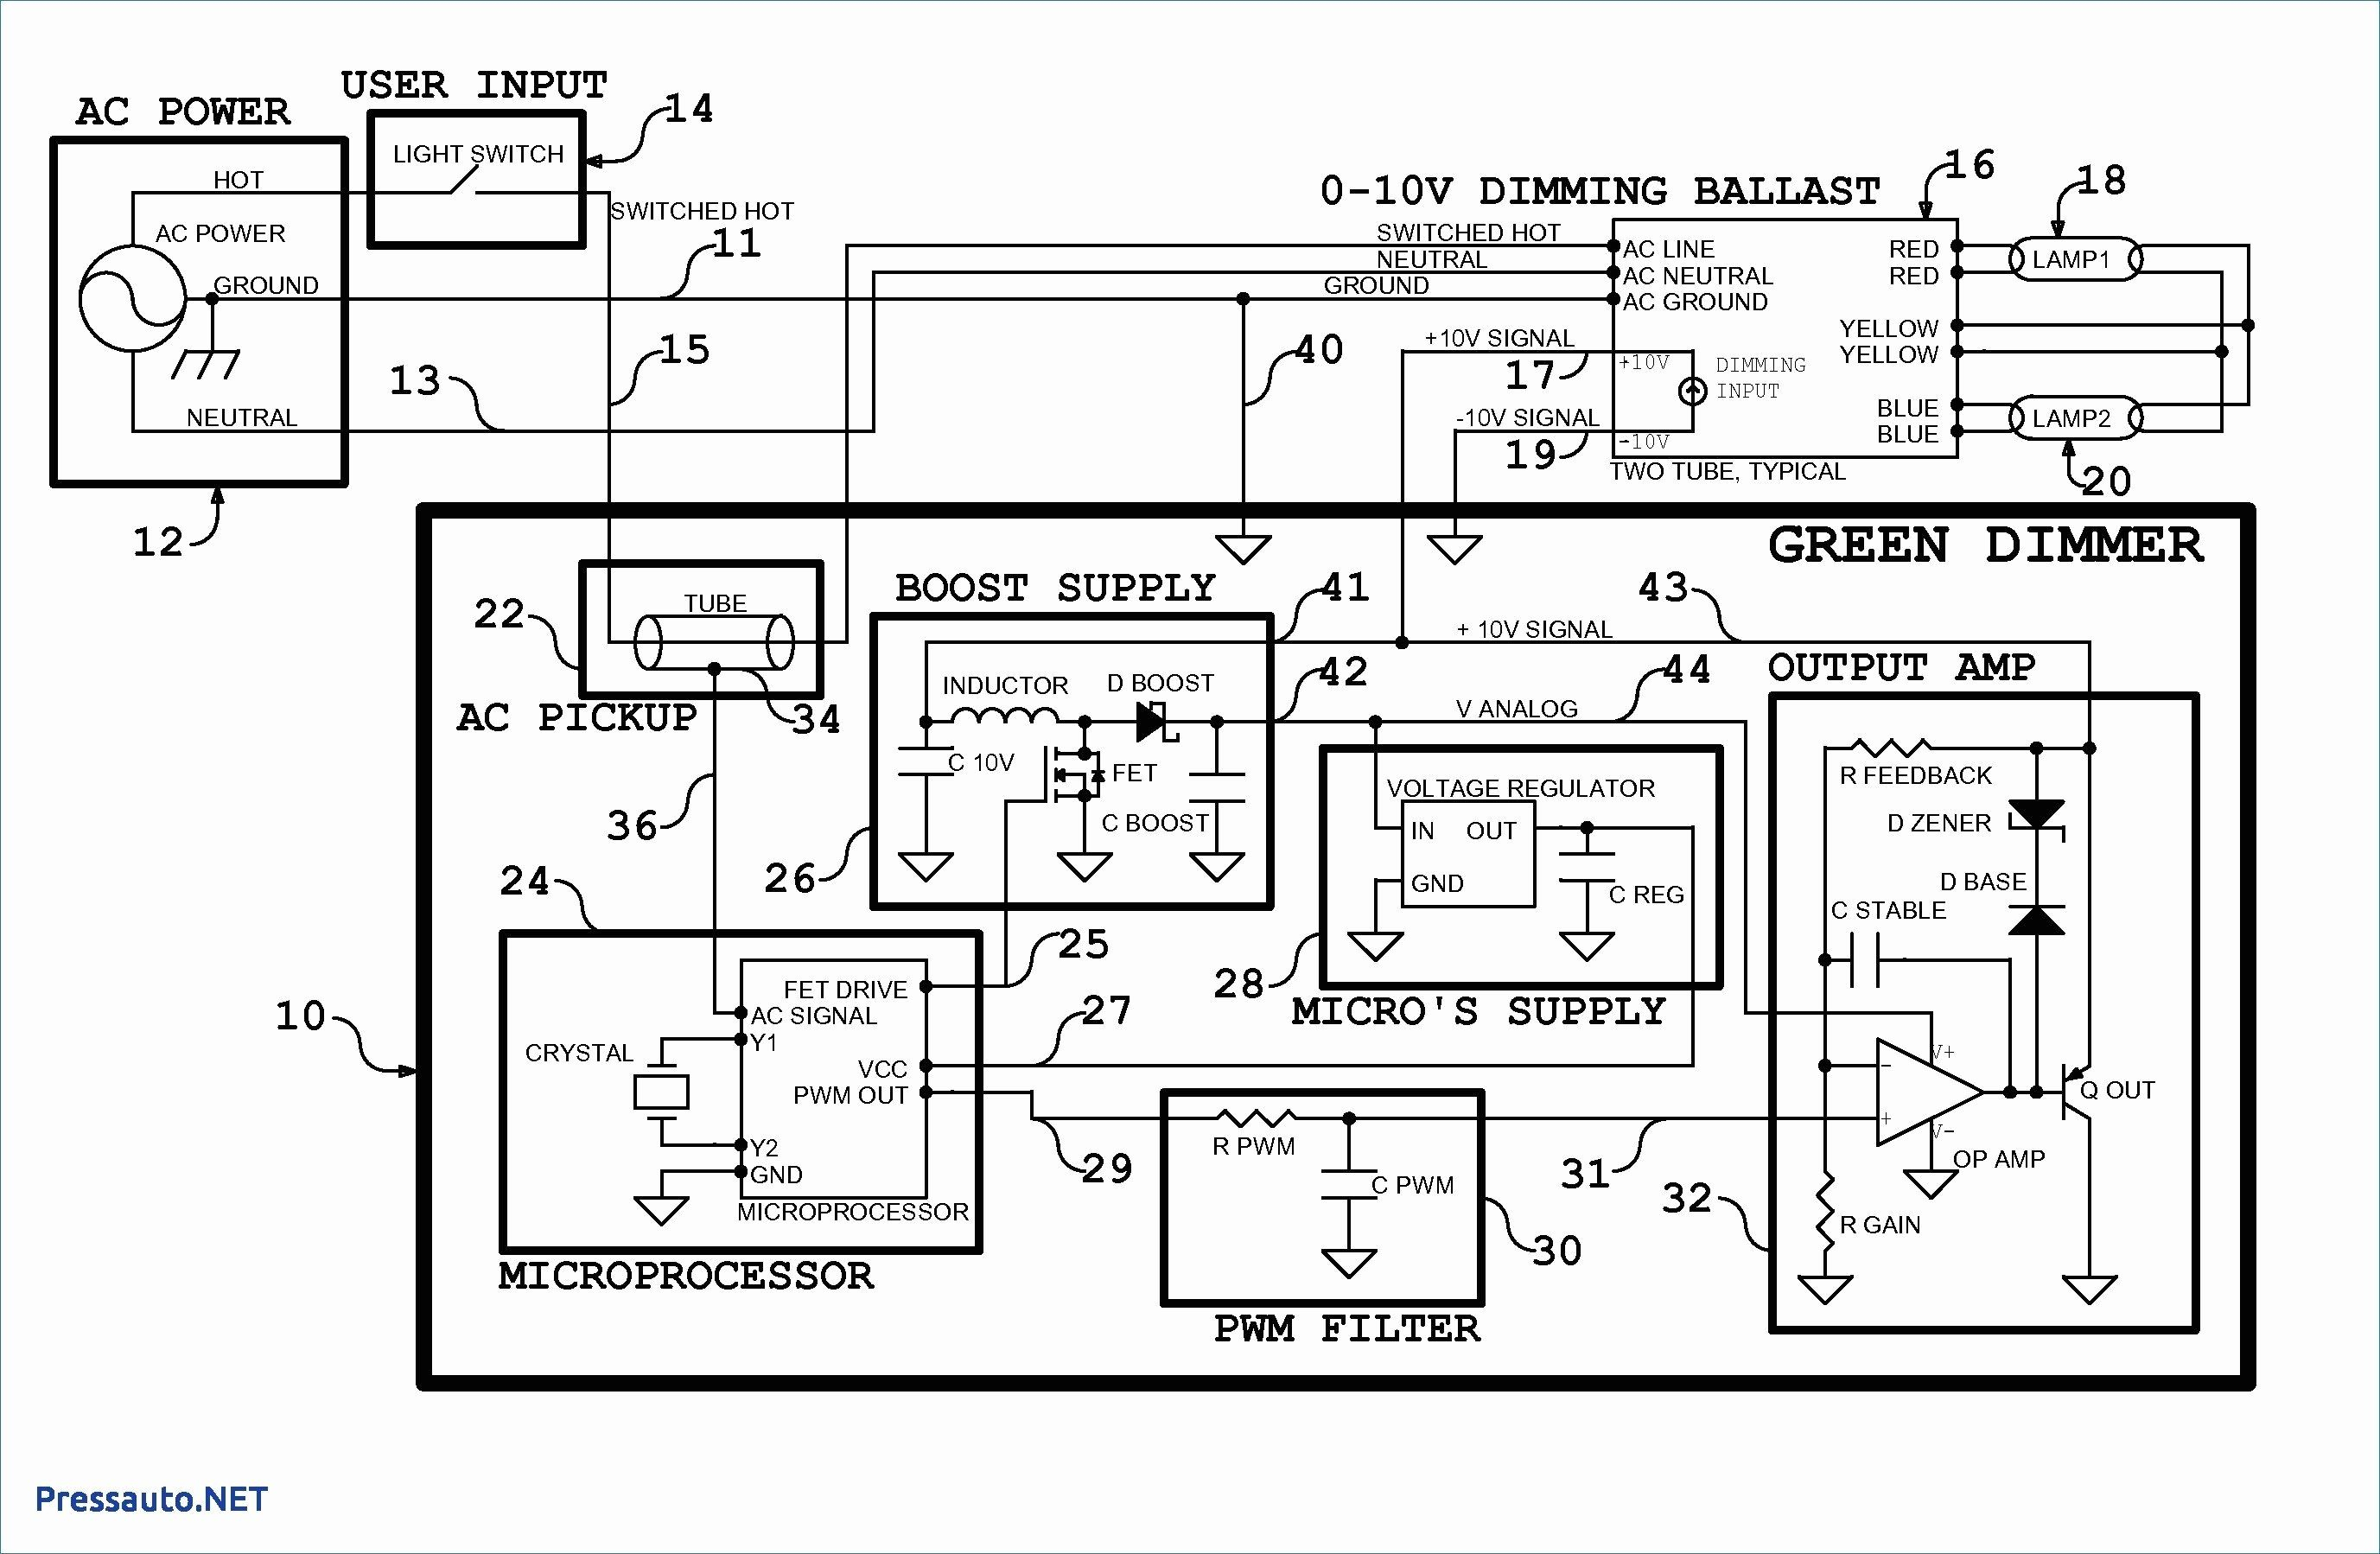 60 Best Of 0 10 Volt Dimming Wiring Diagram Pics | Wsmce - 0 10 Volt Dimming Wiring Diagram